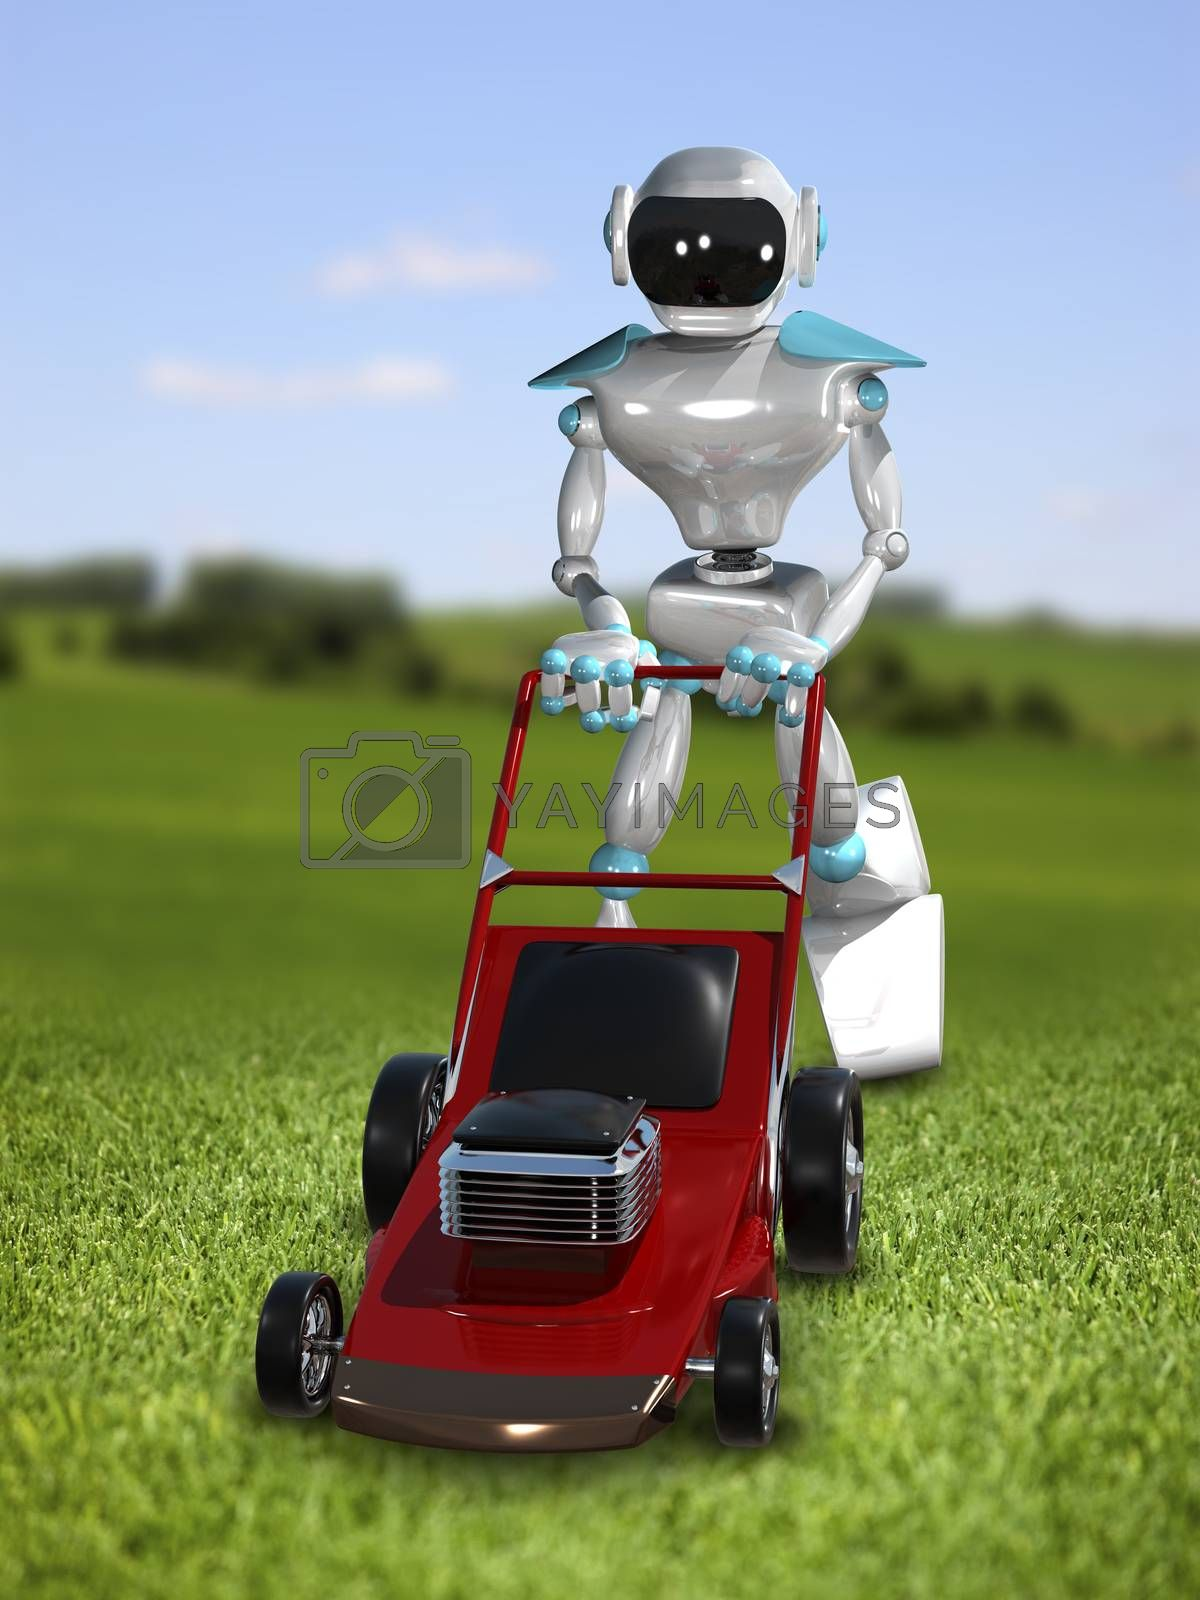 3D Illustration of a Robot with Lawn Mower